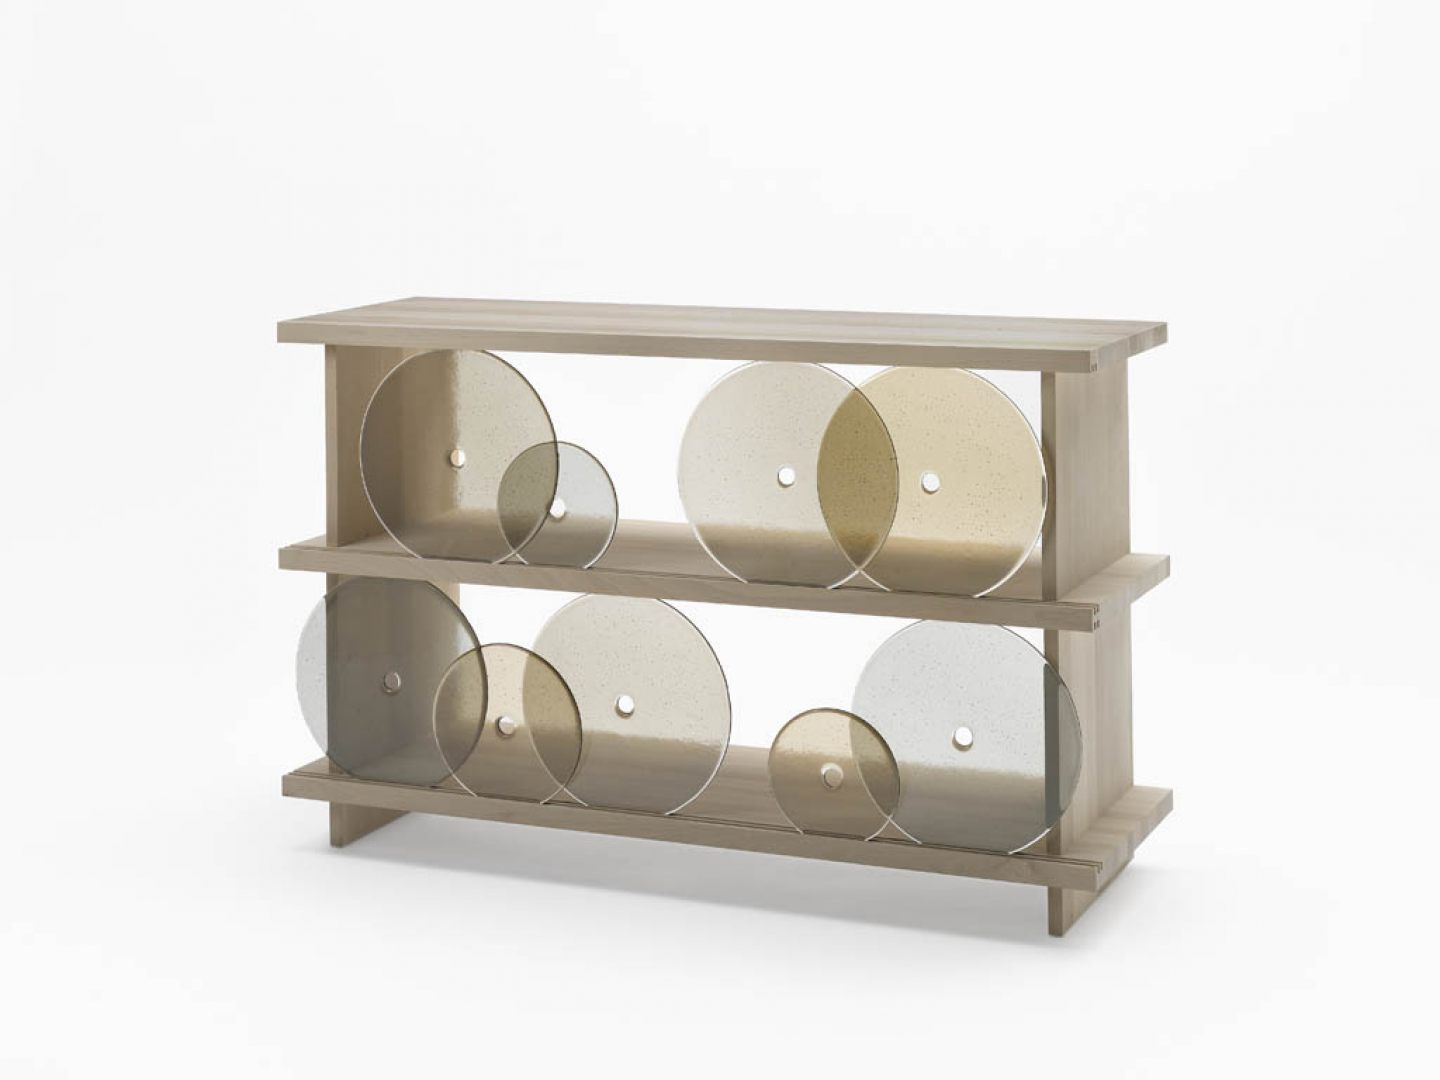 Dilmos-rotating-disk shelf03